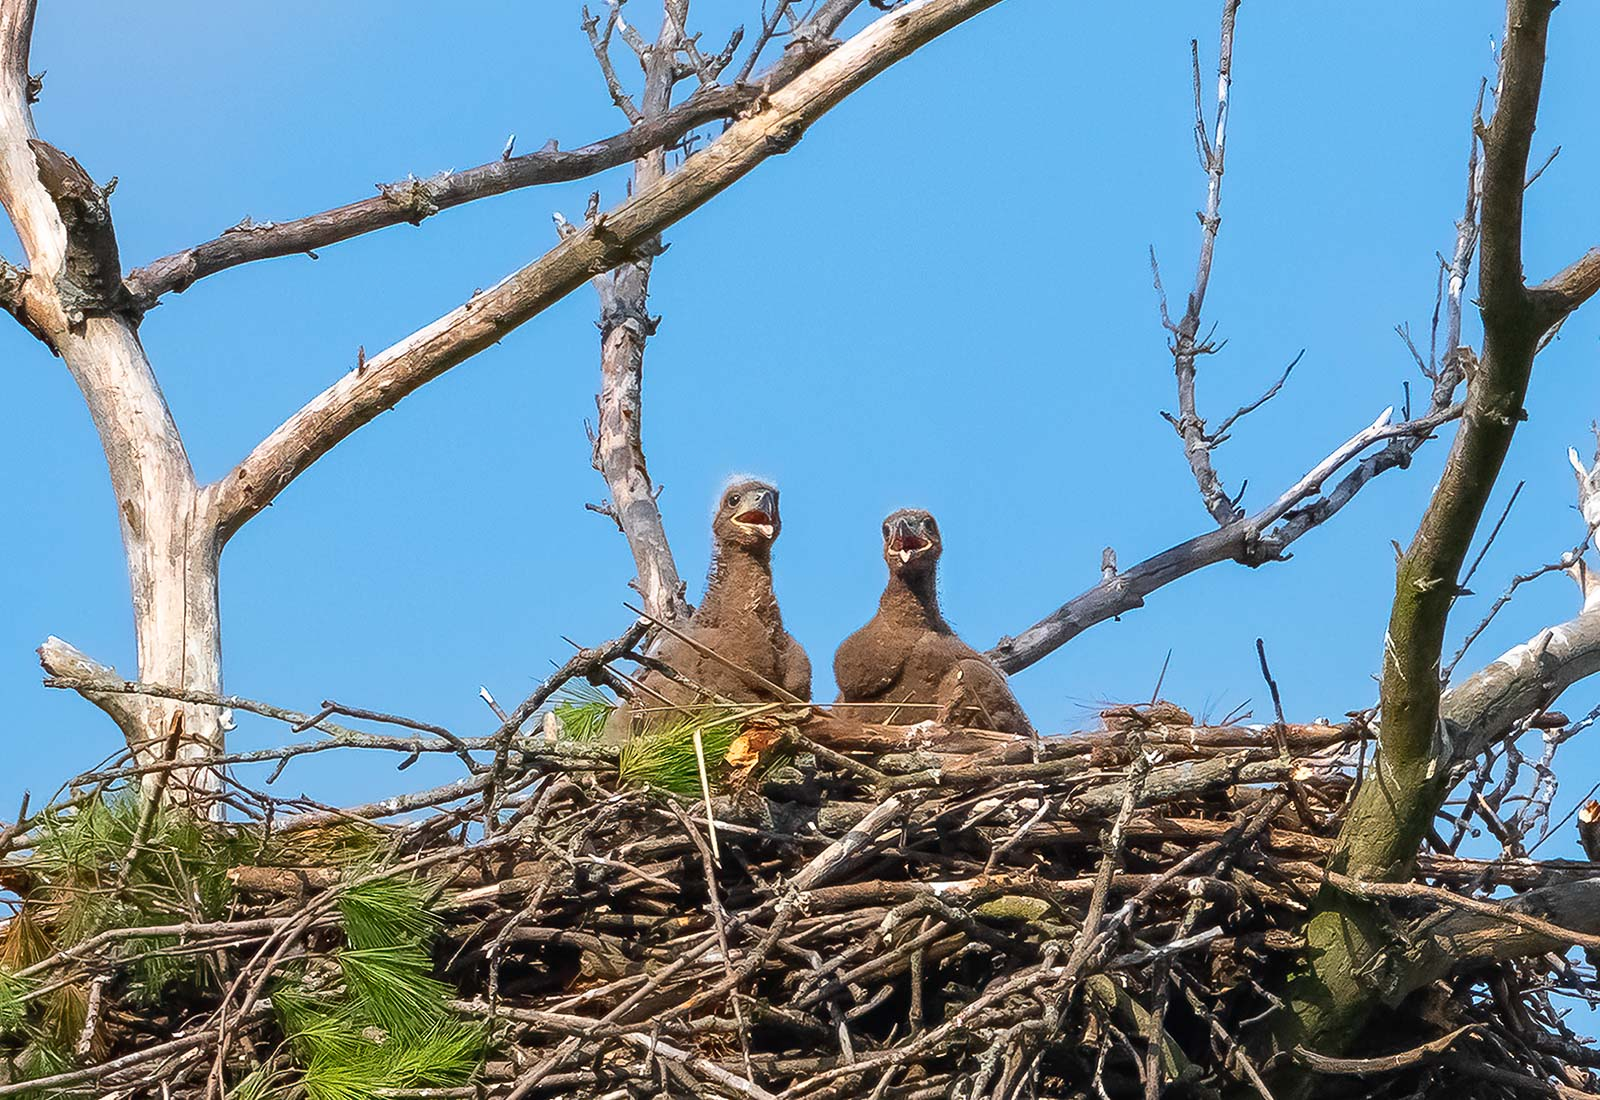 Two eaglets in the nest